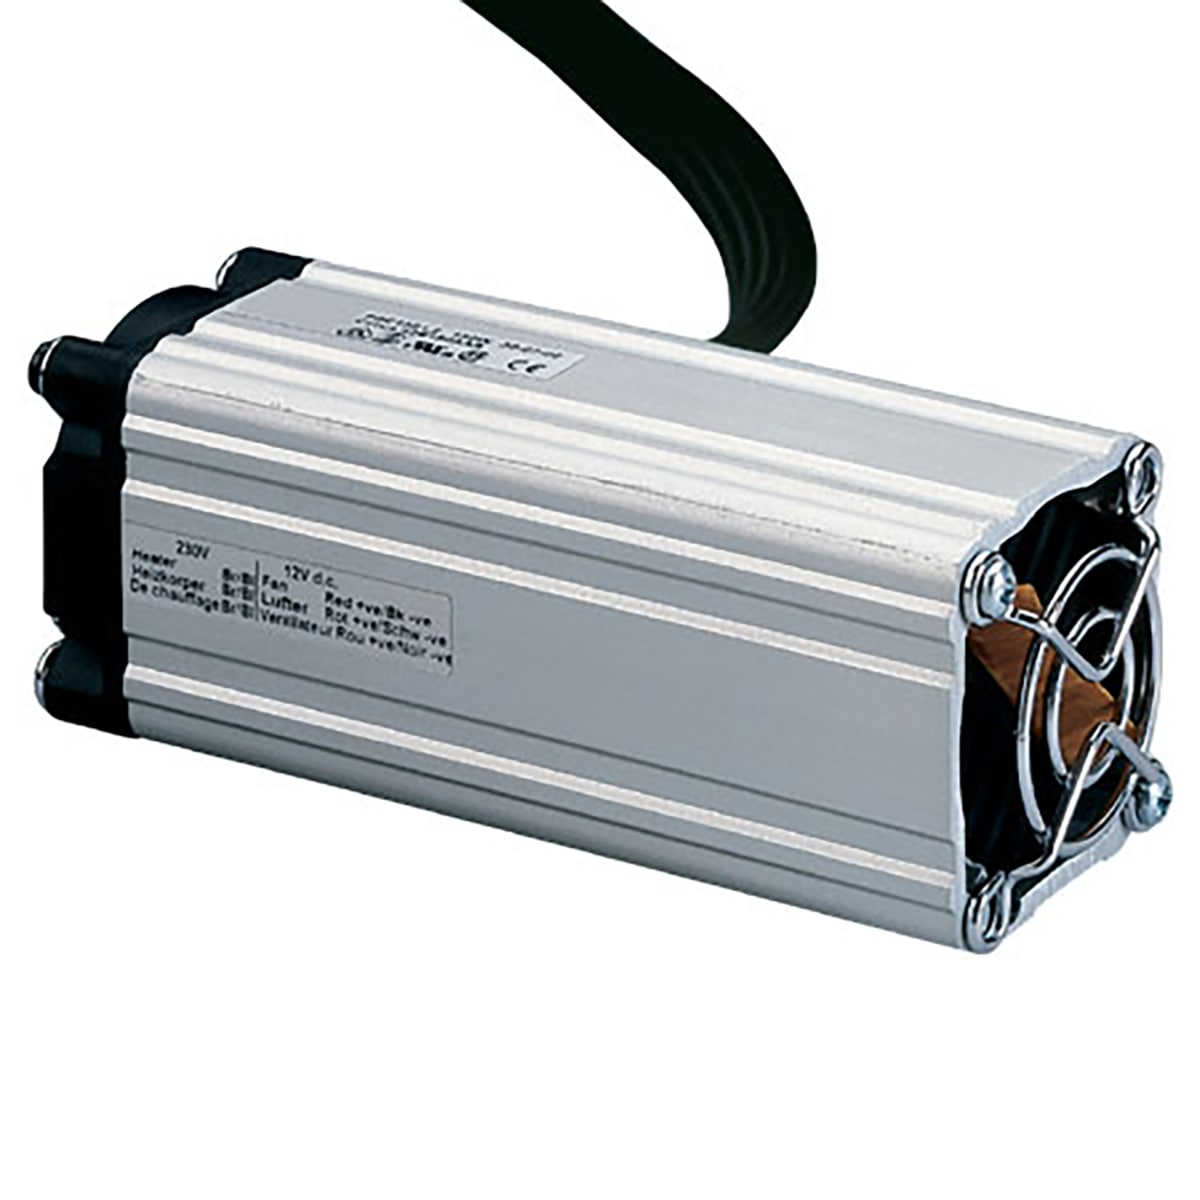 Compact Enclosure Fan Heaters from 60 to 230W